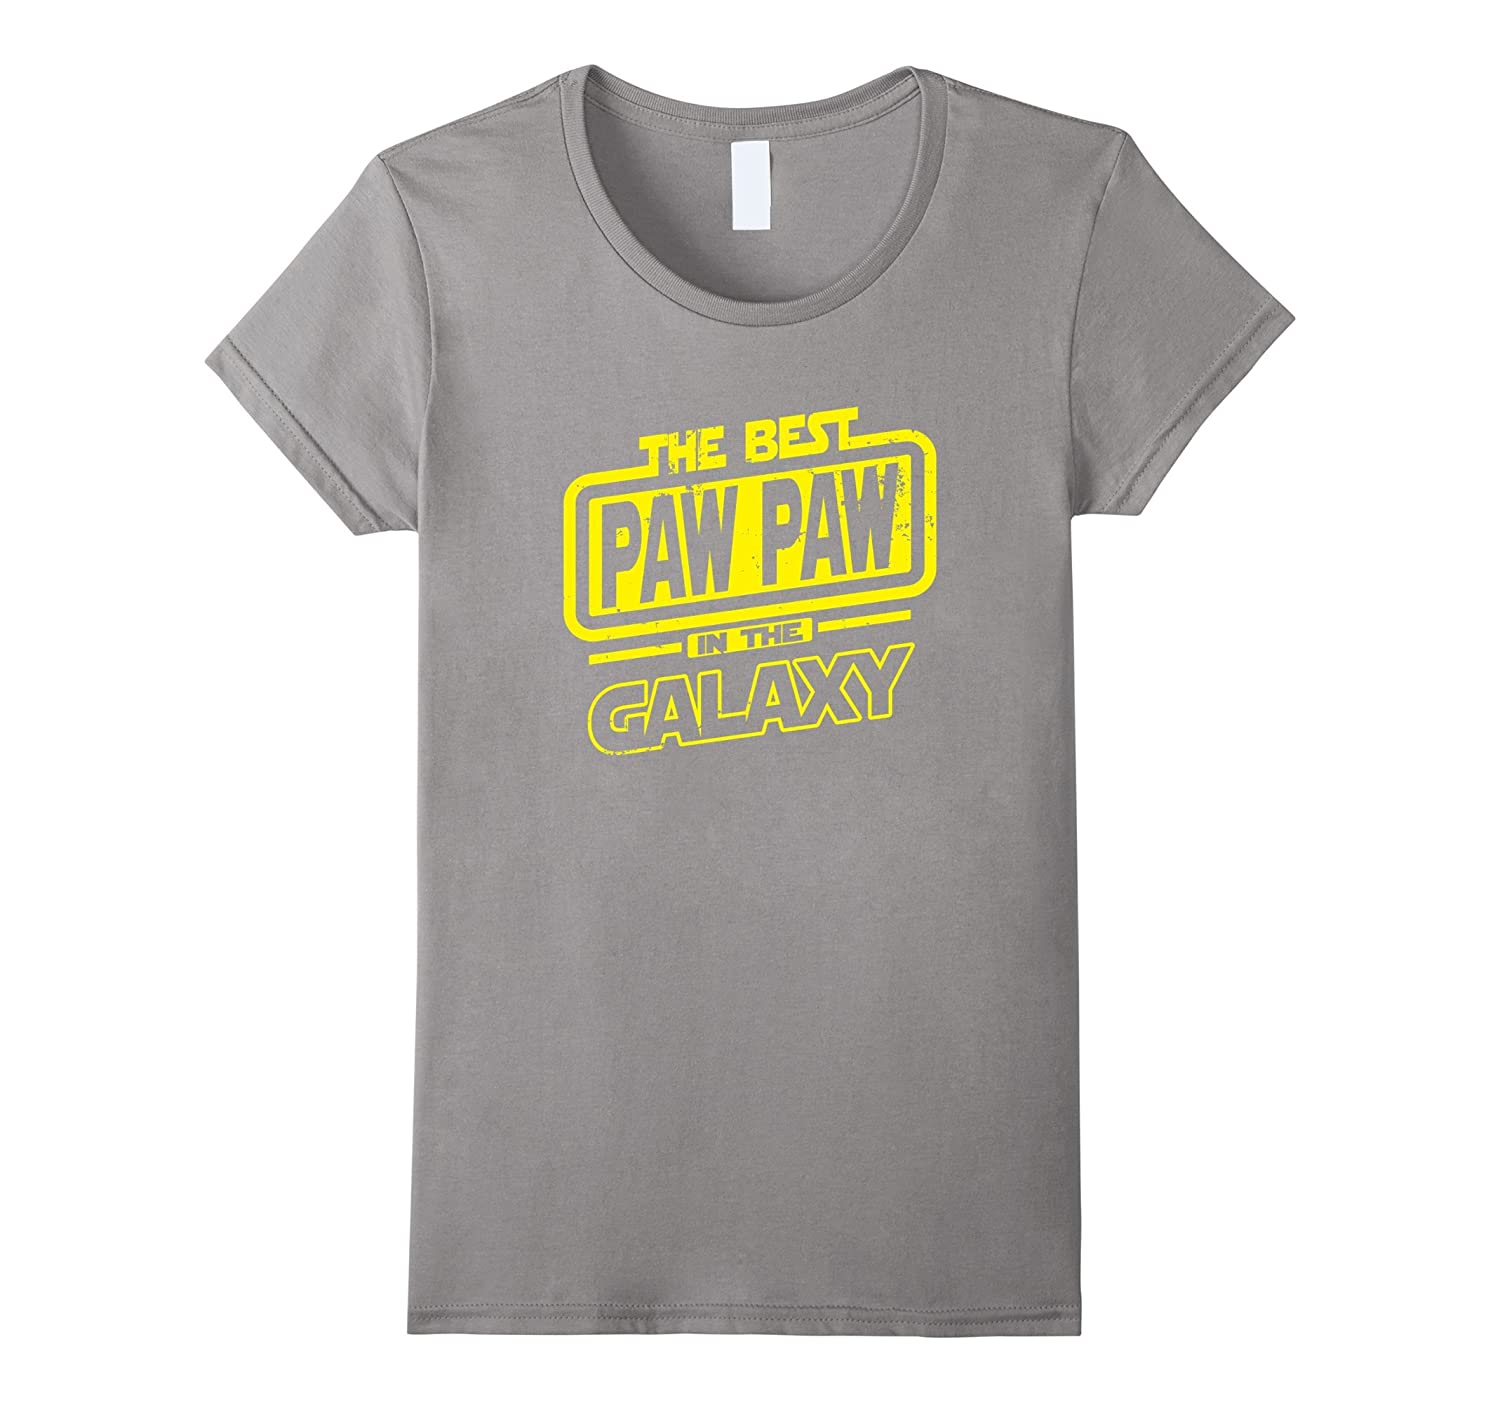 The Best Paw Paw In The Galaxy T-Shirt